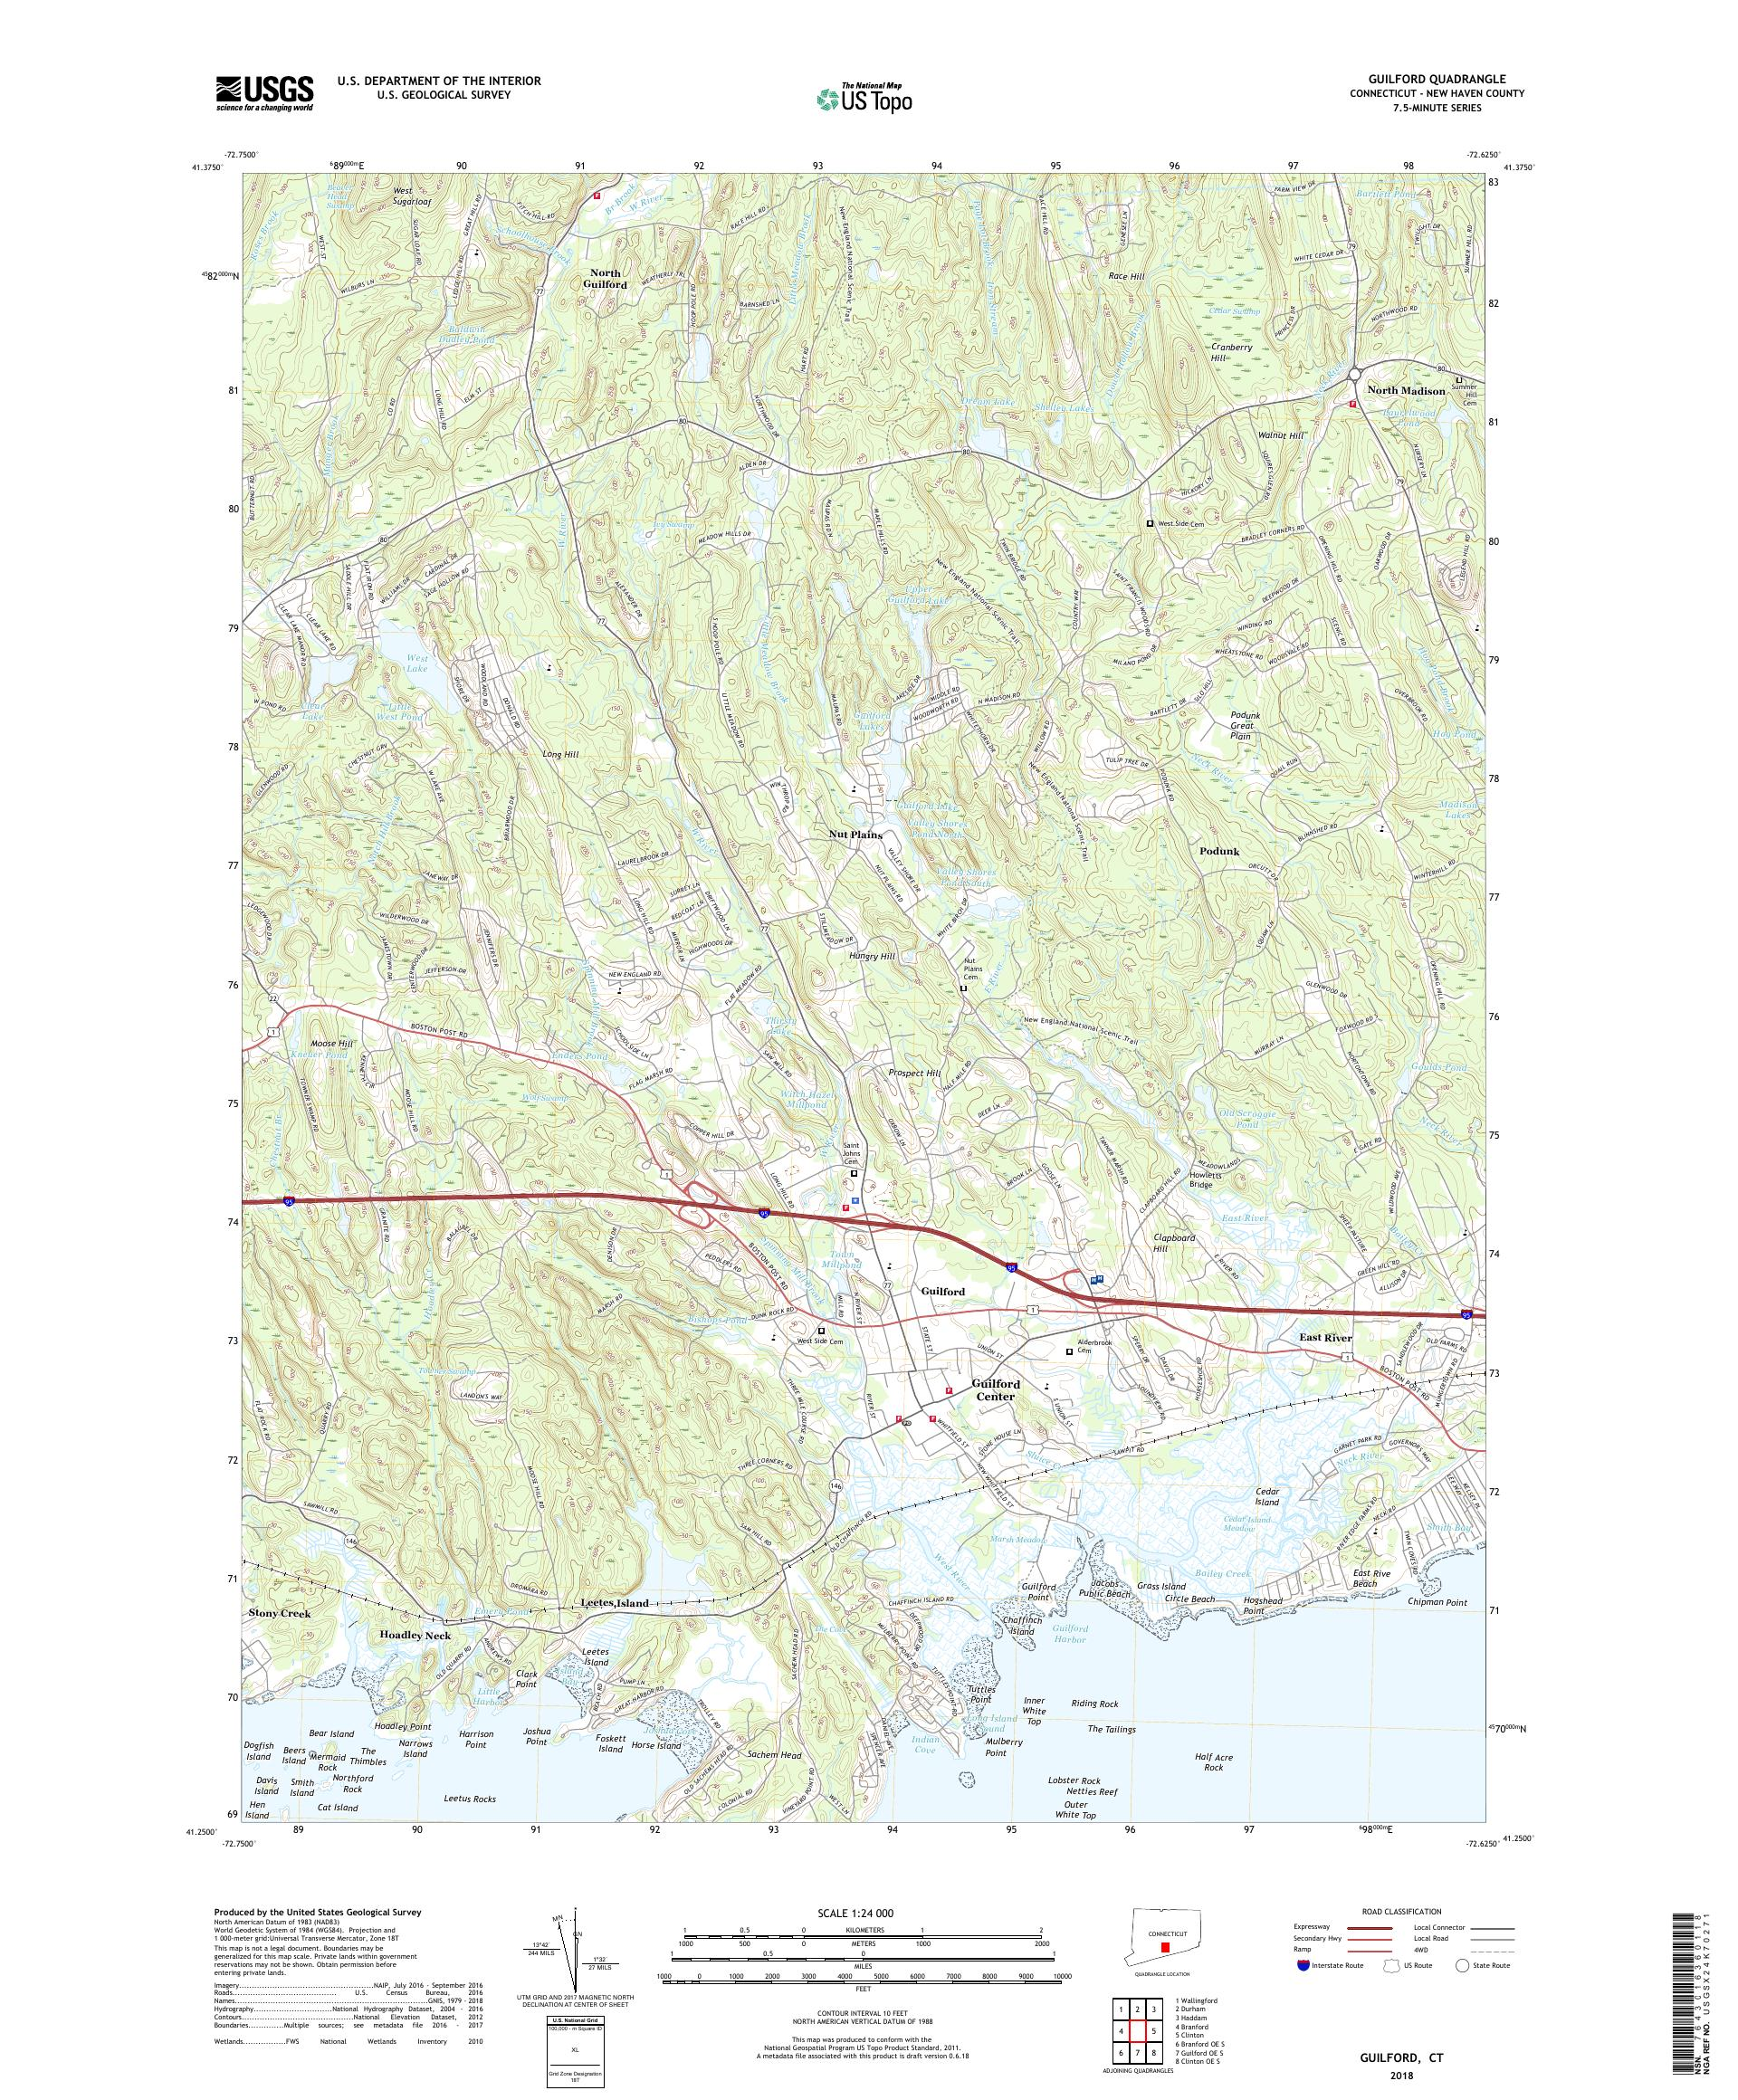 MyTopo Guilford, Connecticut USGS Quad Topo Map